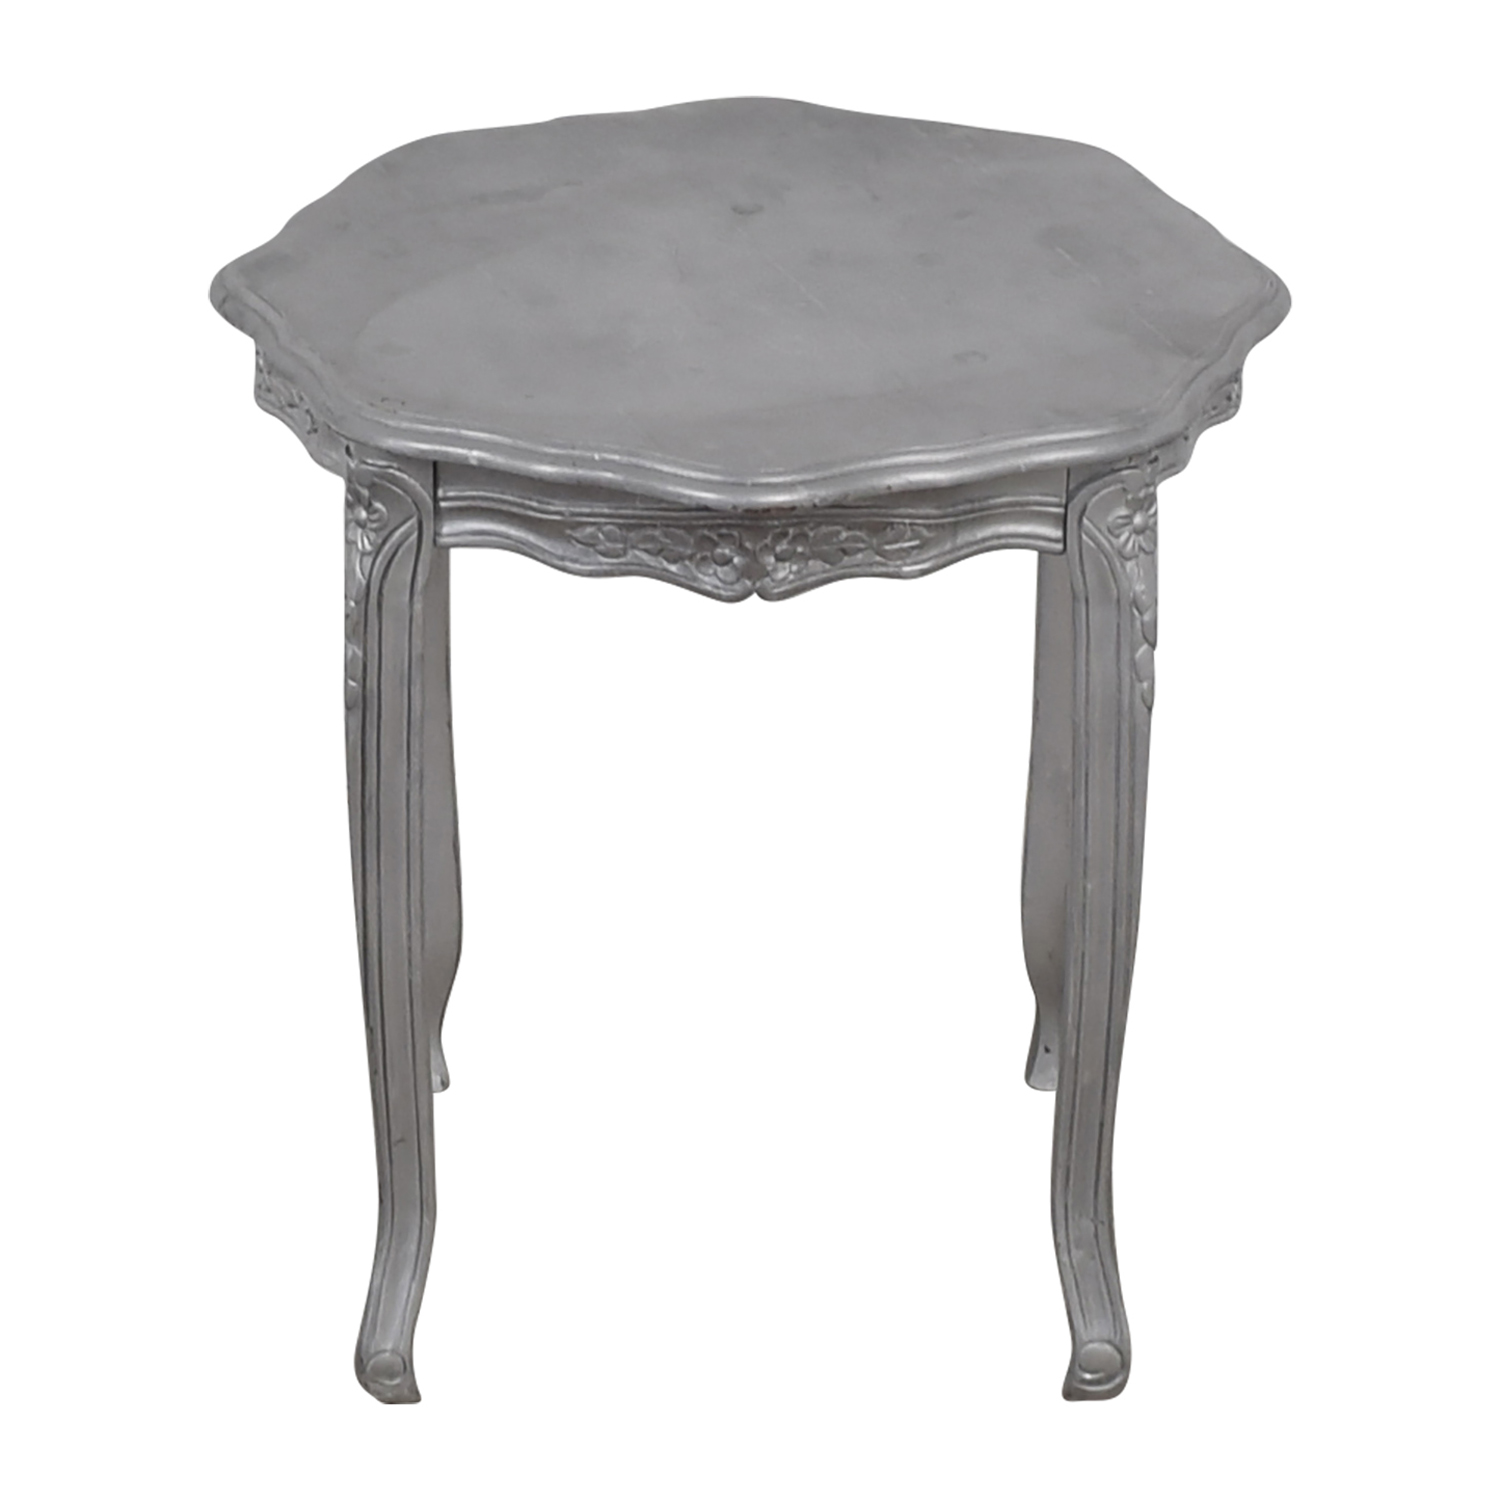 Custom Painted Silver Carved End Table / End Tables